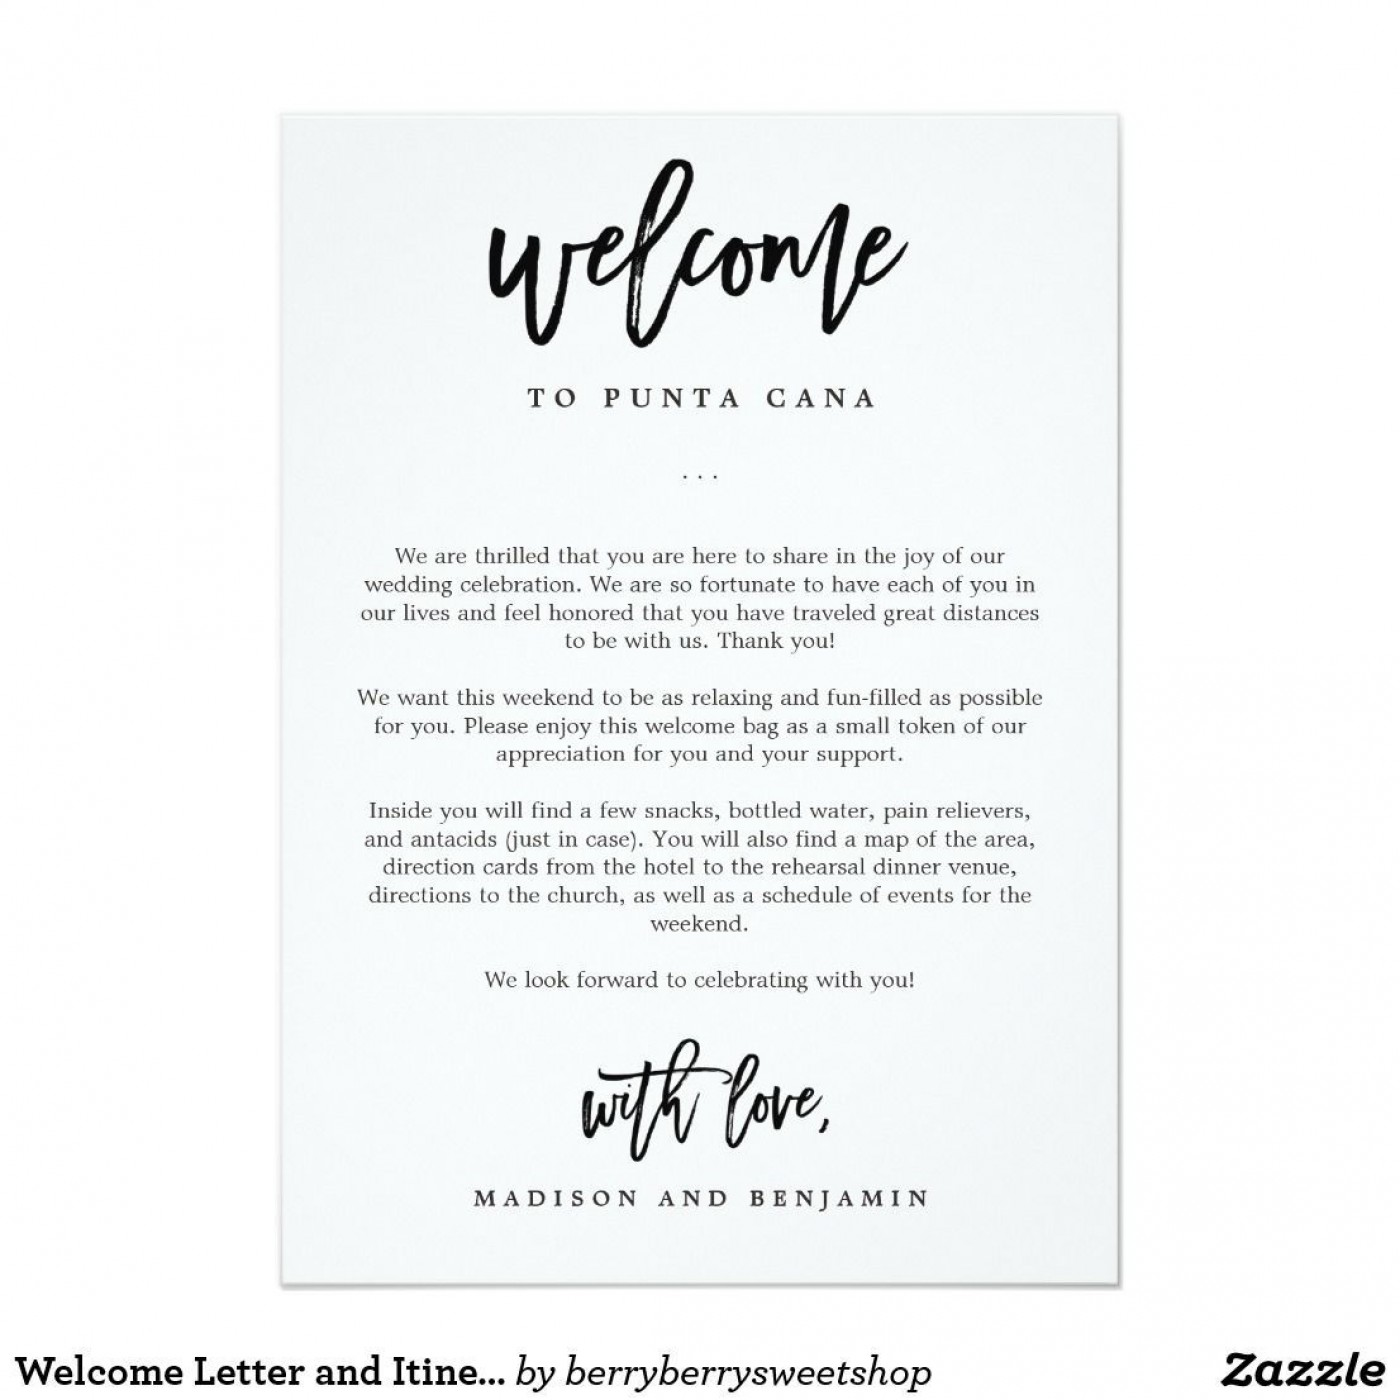 009 Stunning Wedding Hotel Welcome Letter Template Highest Quality 1400